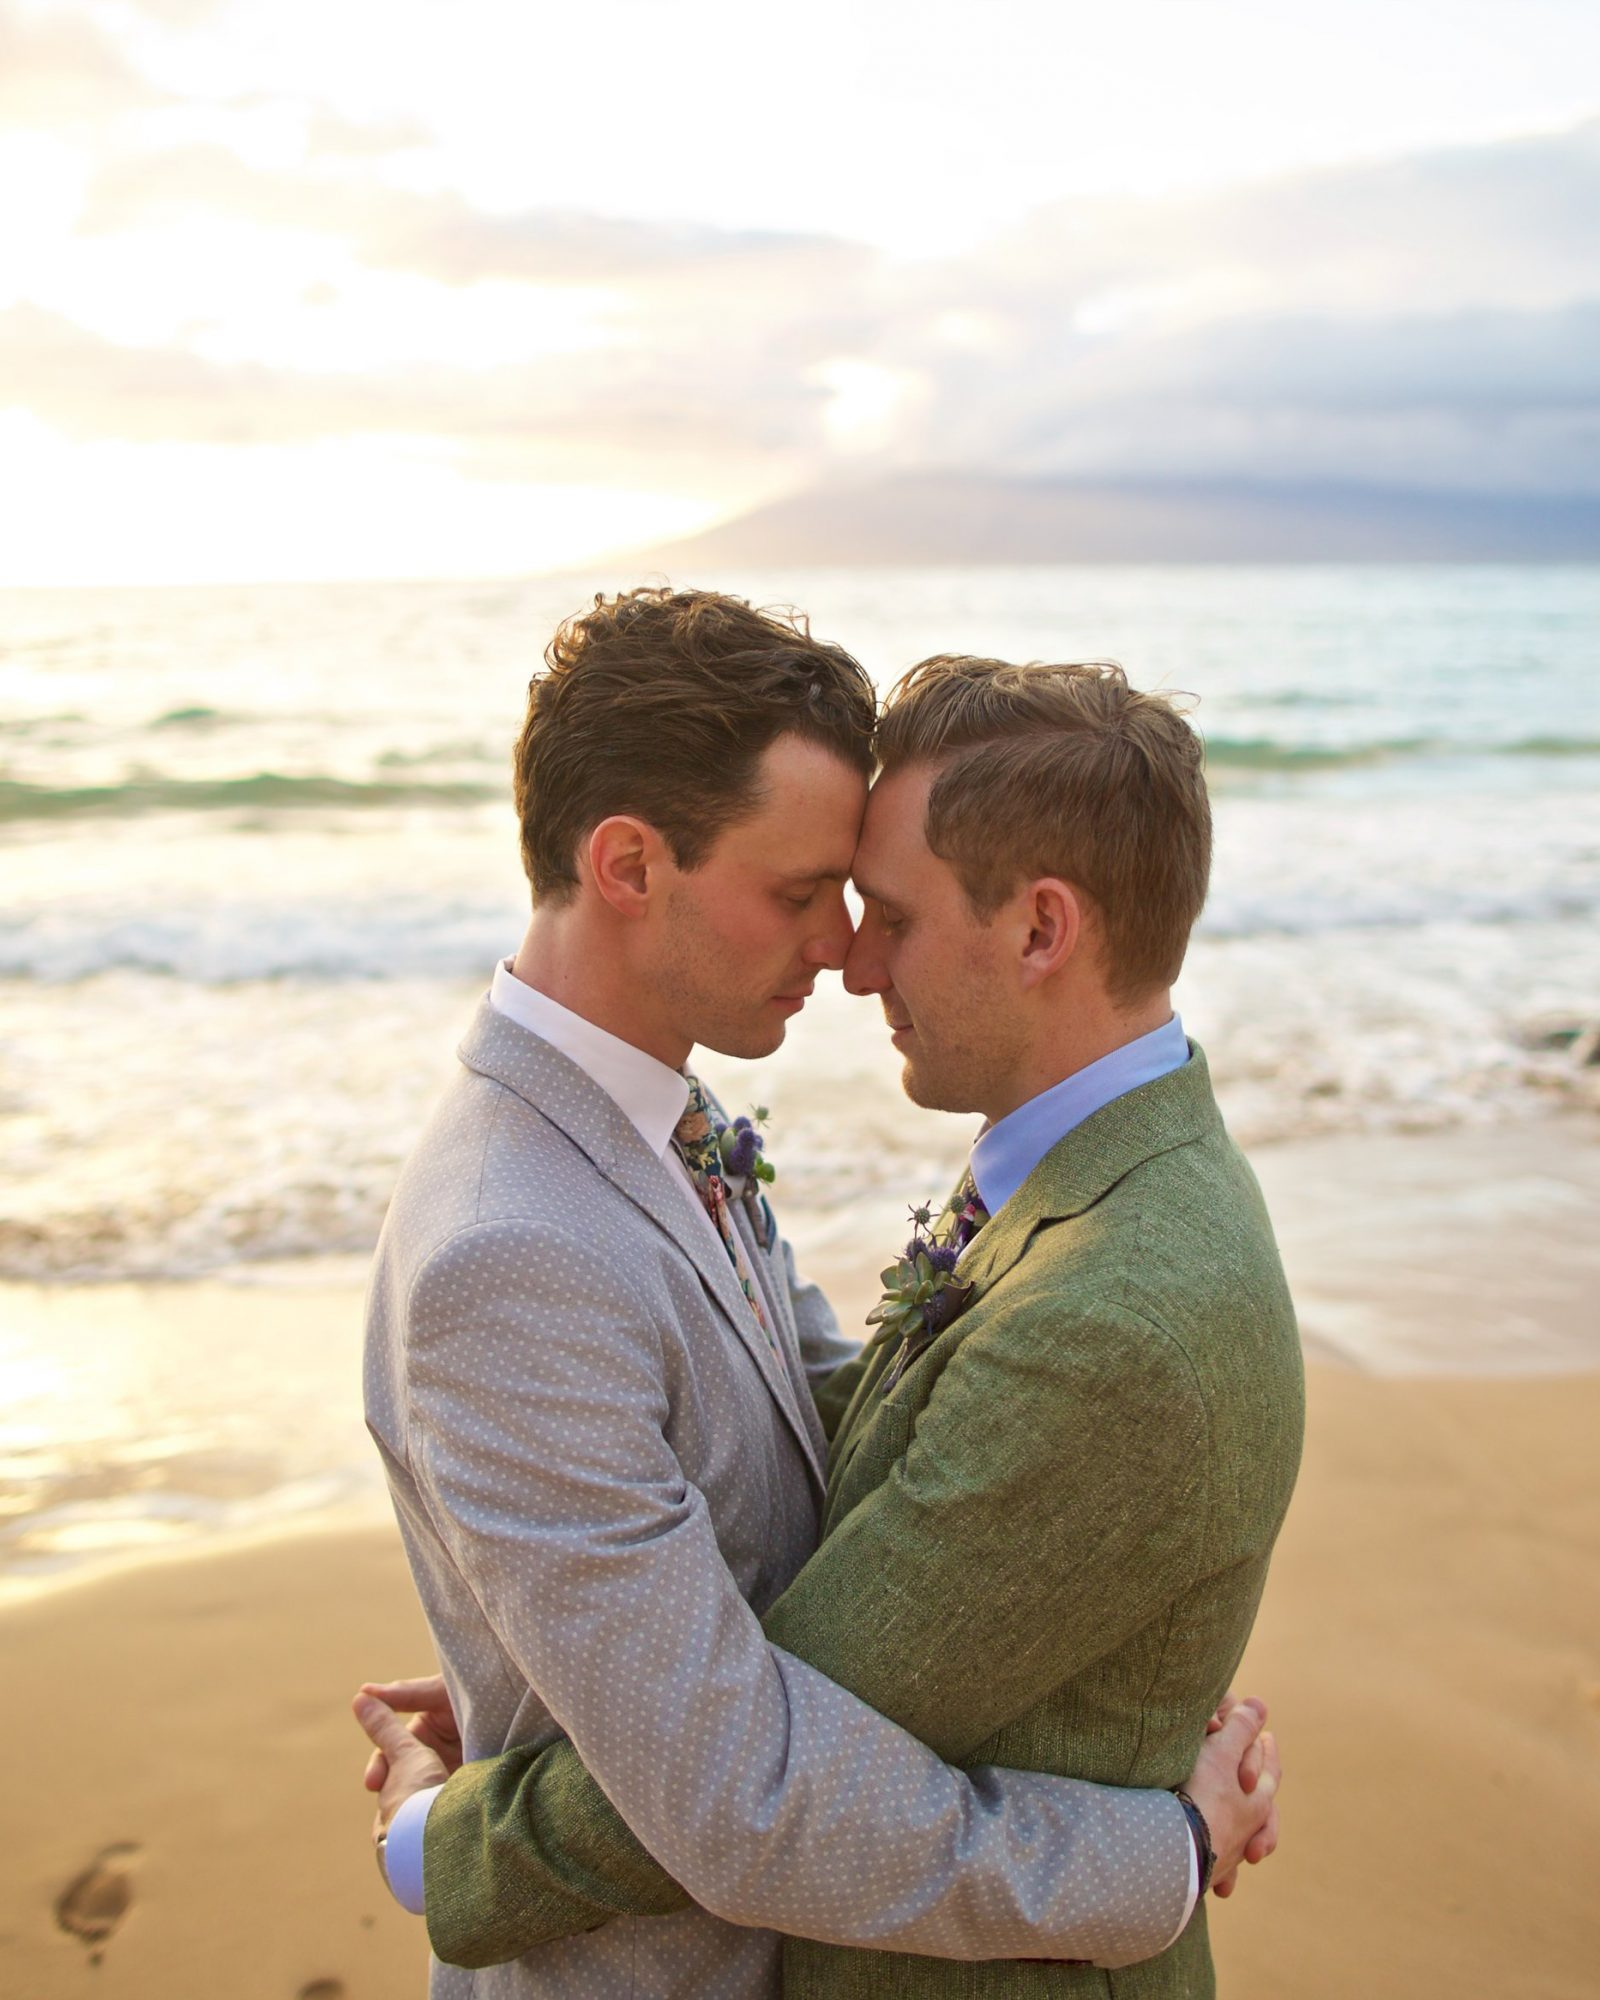 sunset wedding photos grooms embracing on beach